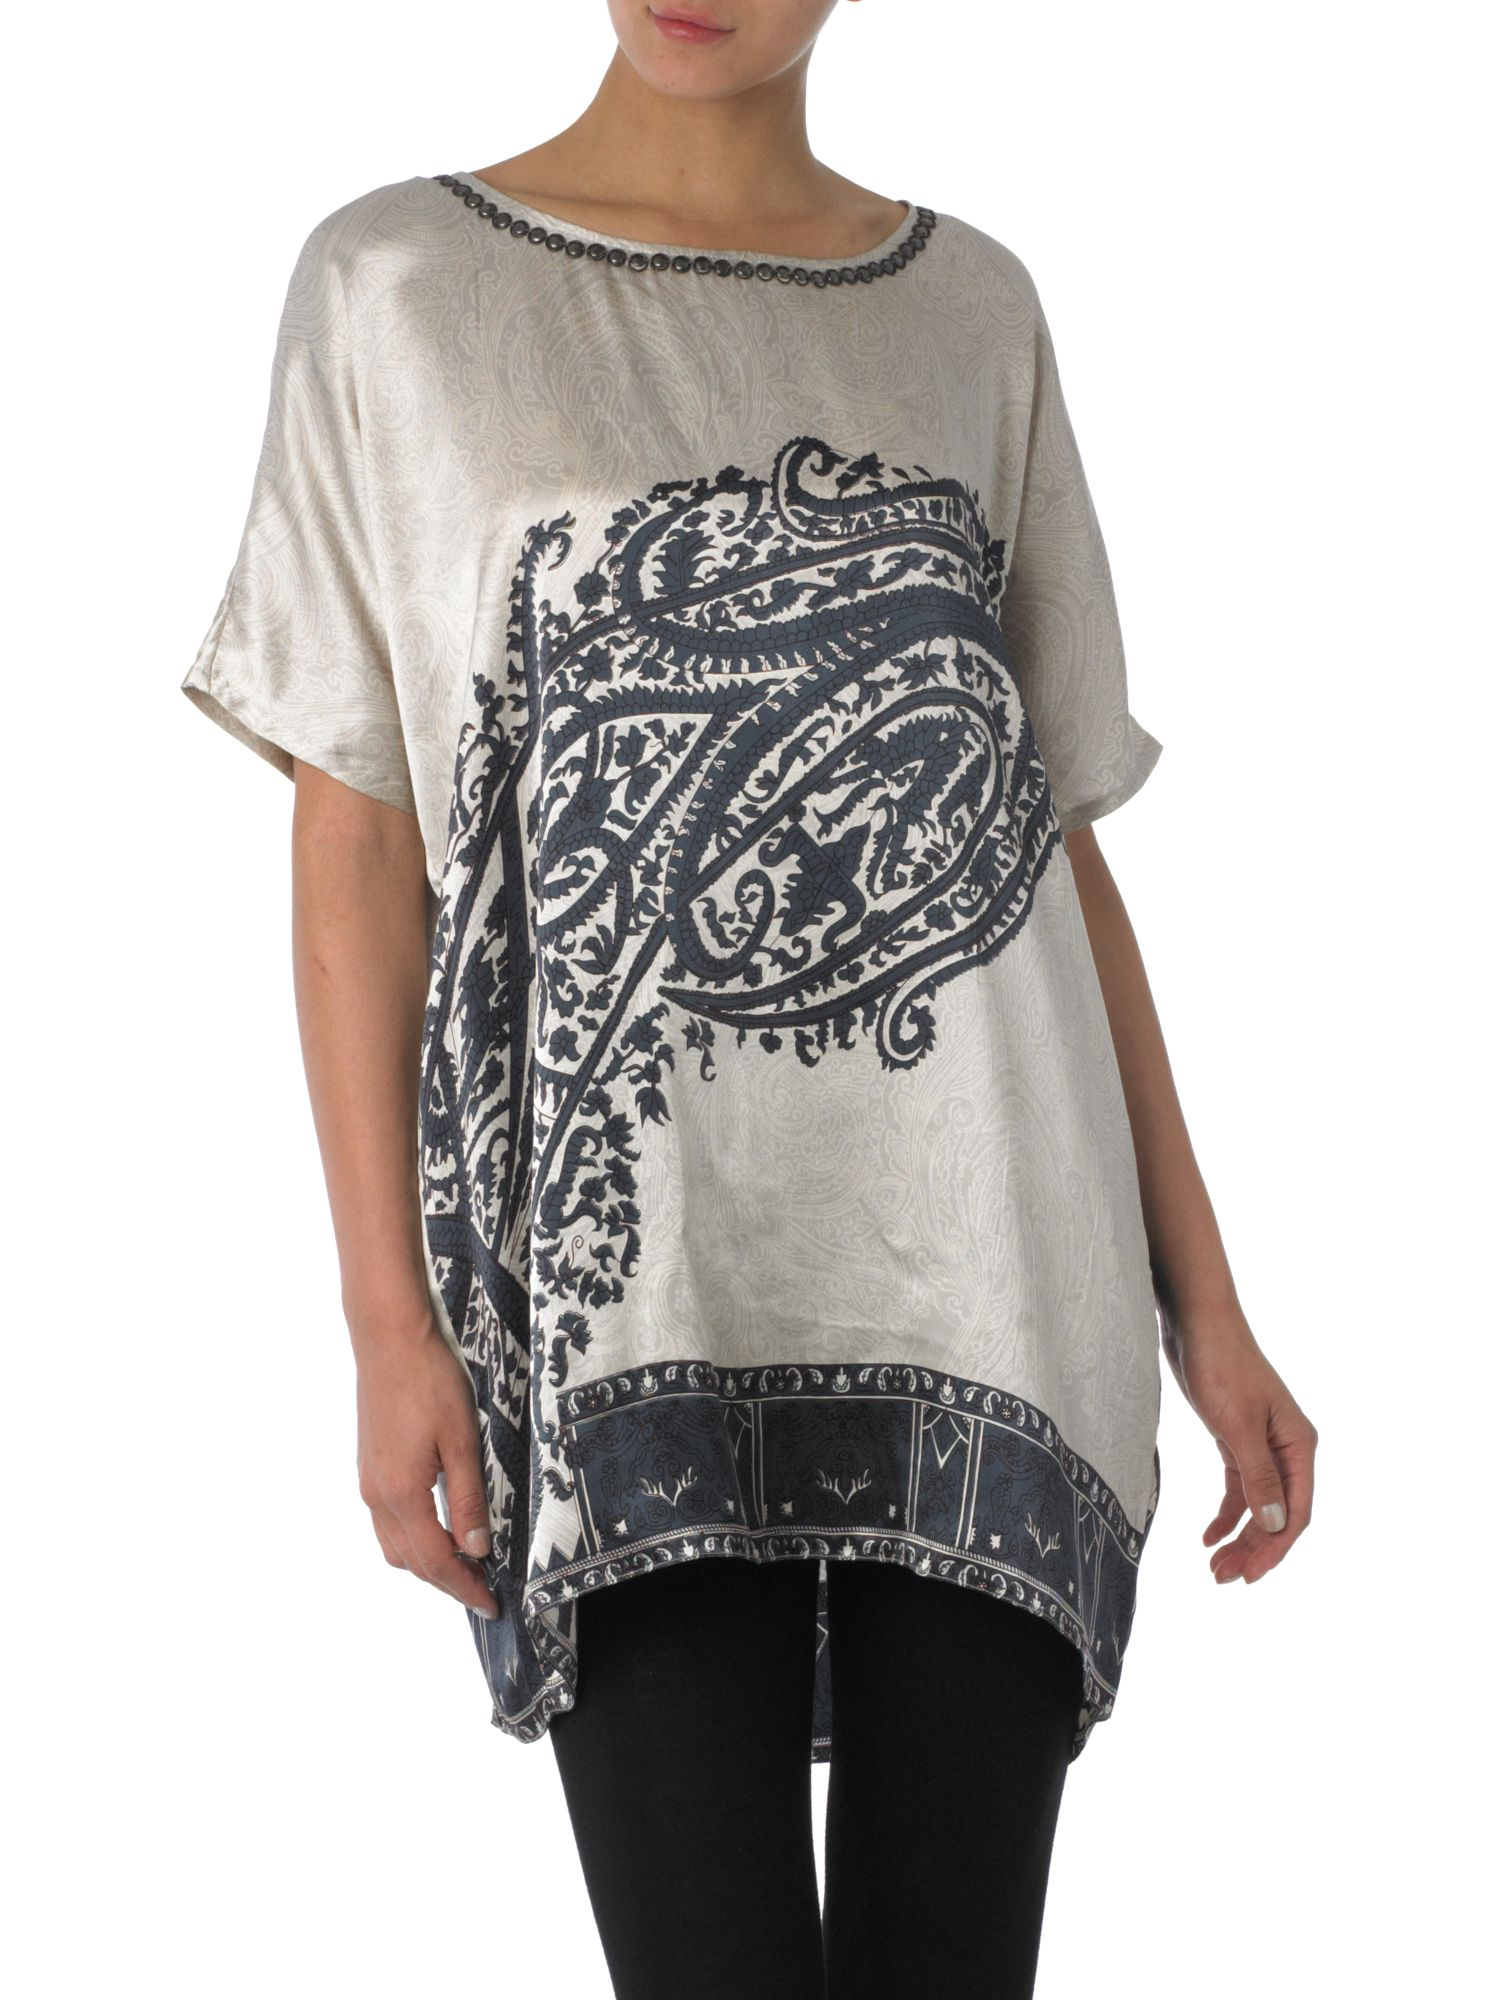 Day Birger Et Mikkelsen Day paisley blouse - Black 8,8 product image